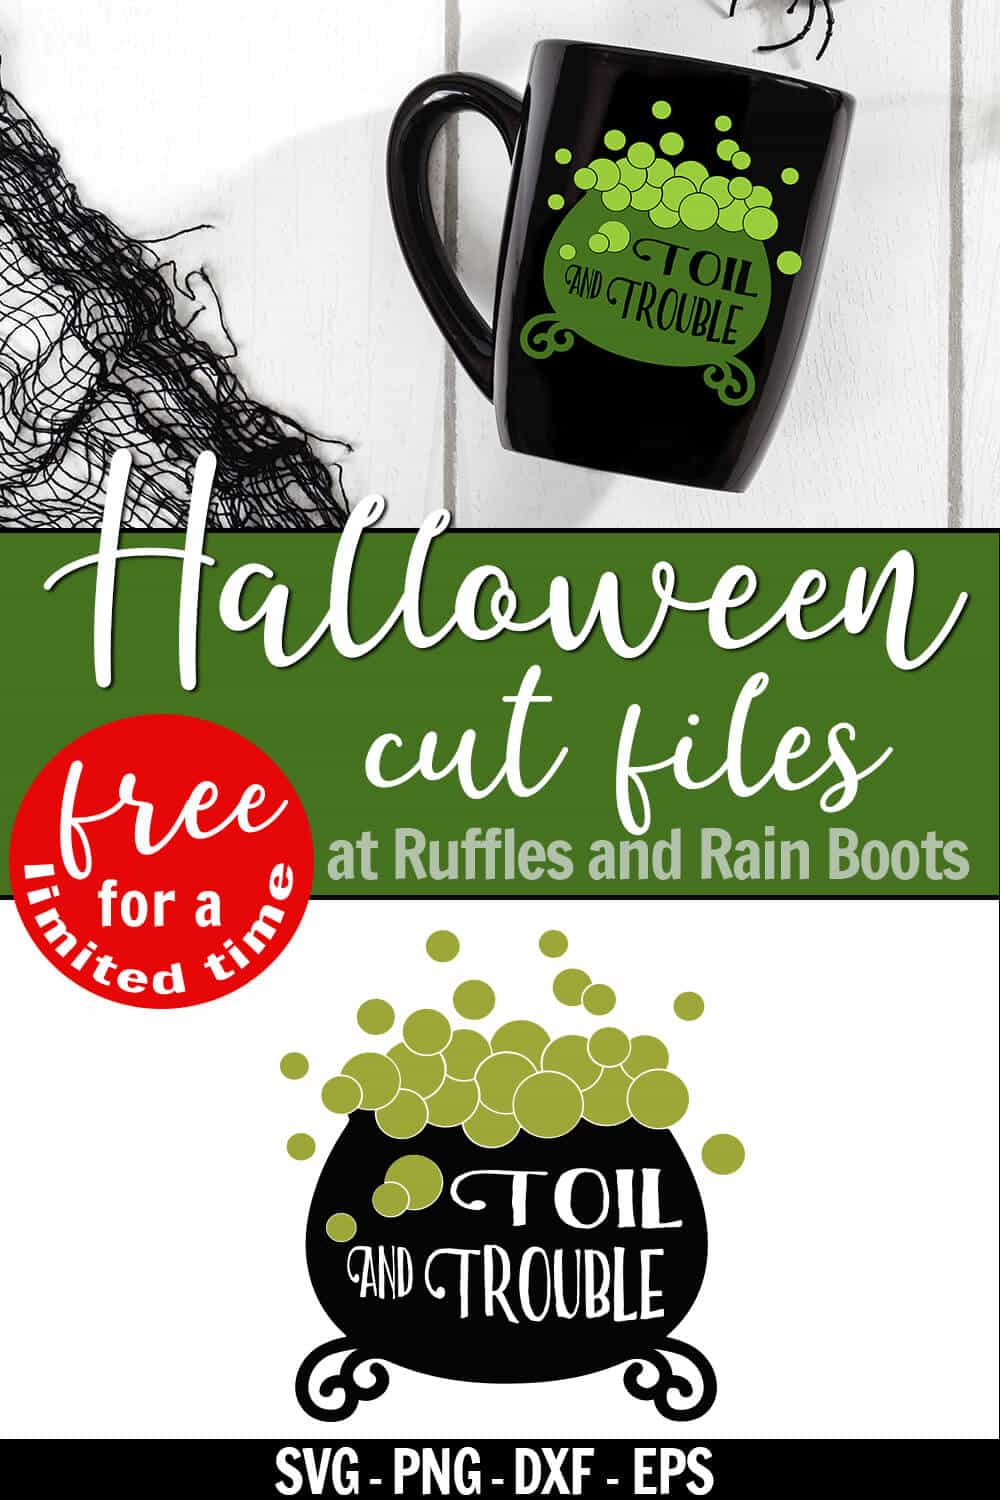 collage of toil and trouble svg for Cricut on mug and white wood background with text which reads Halloween cut files at Ruffles and Rain Boots